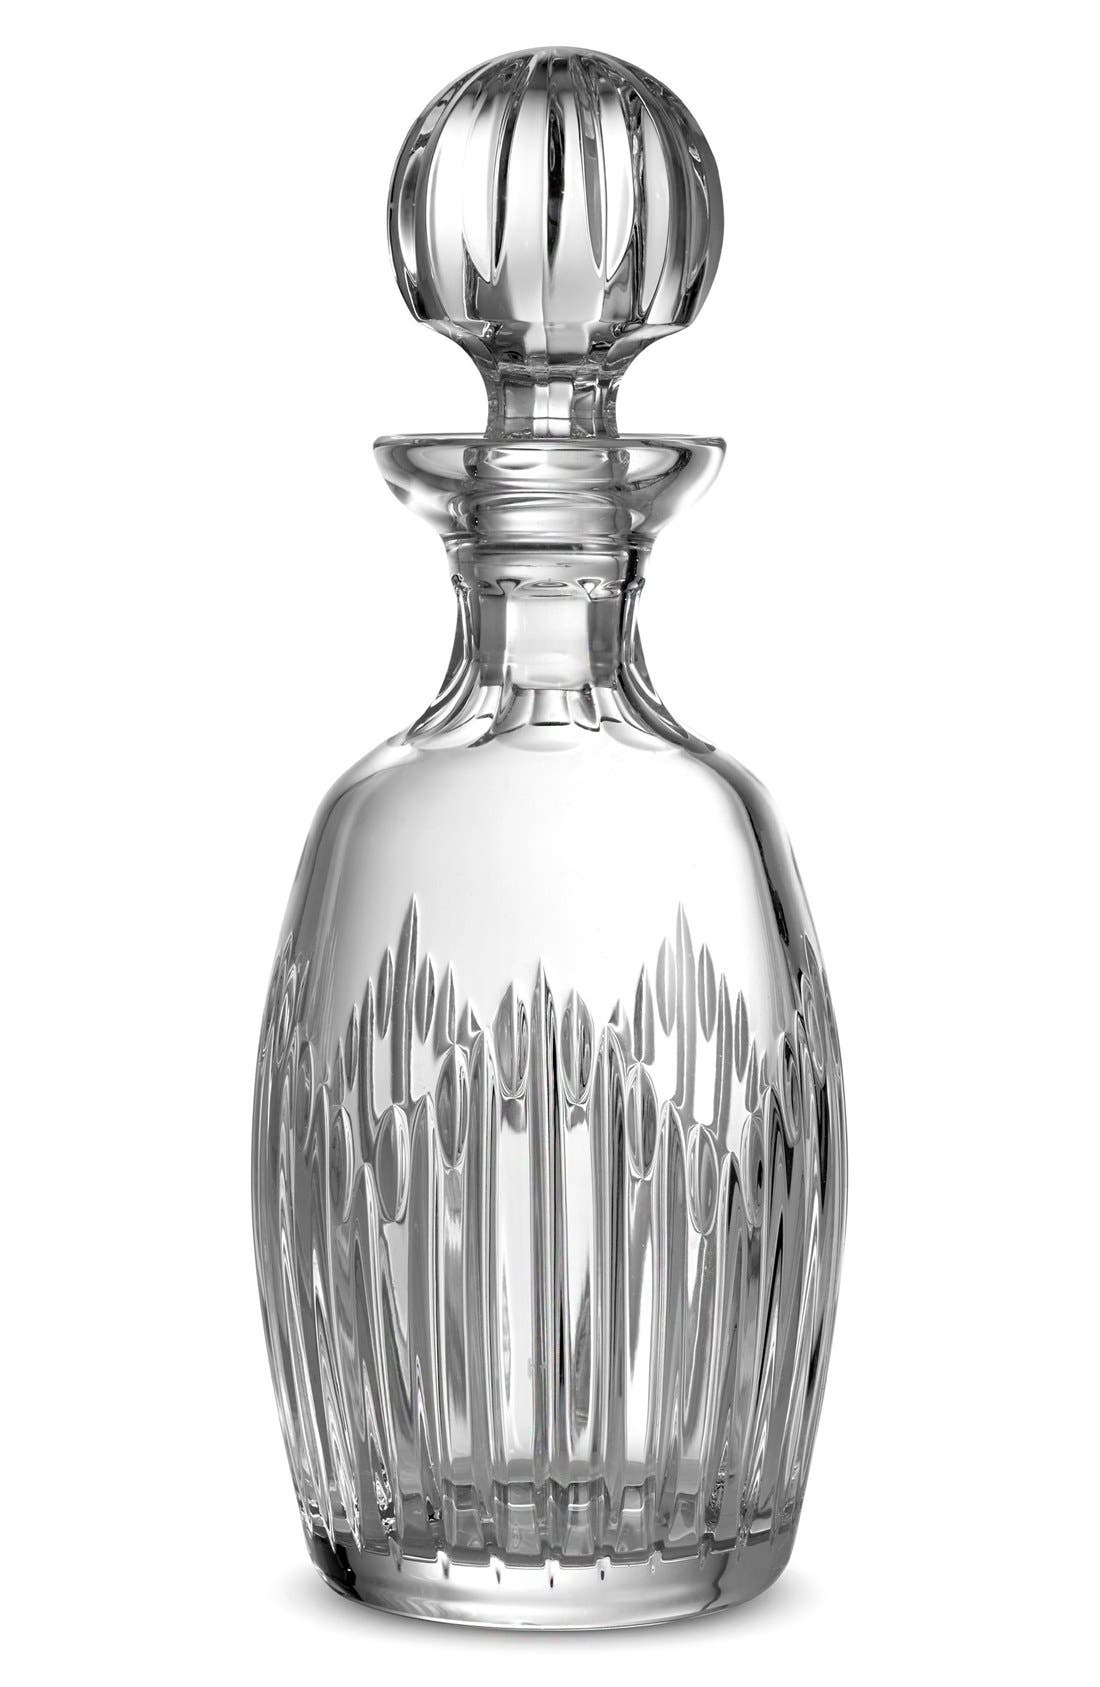 Alternate Image 1 Selected - Monique Lhuillier Waterford 'Stardust' Lead Crystal Decanter & Stopper